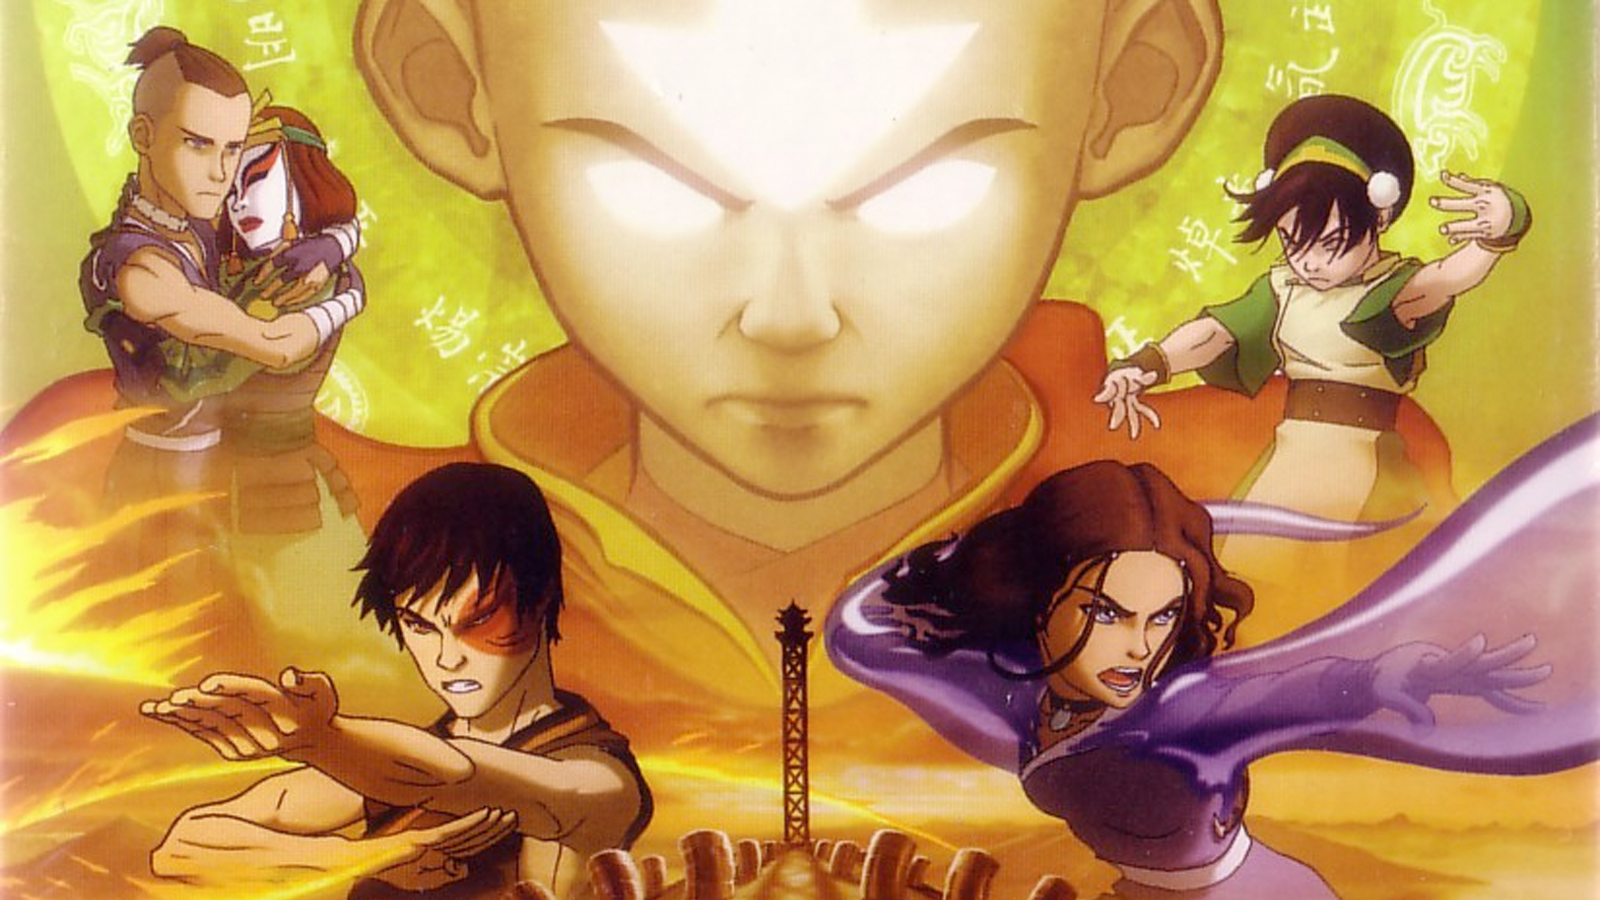 Free Download Avatar The Last Airbender Computer Wallpapers Desktop Backgrounds 1600x901 For Your Desktop Mobile Tablet Explore 71 Avatar The Last Airbender Backgrounds Avatar Wallpapers Free Download Avatar Phone